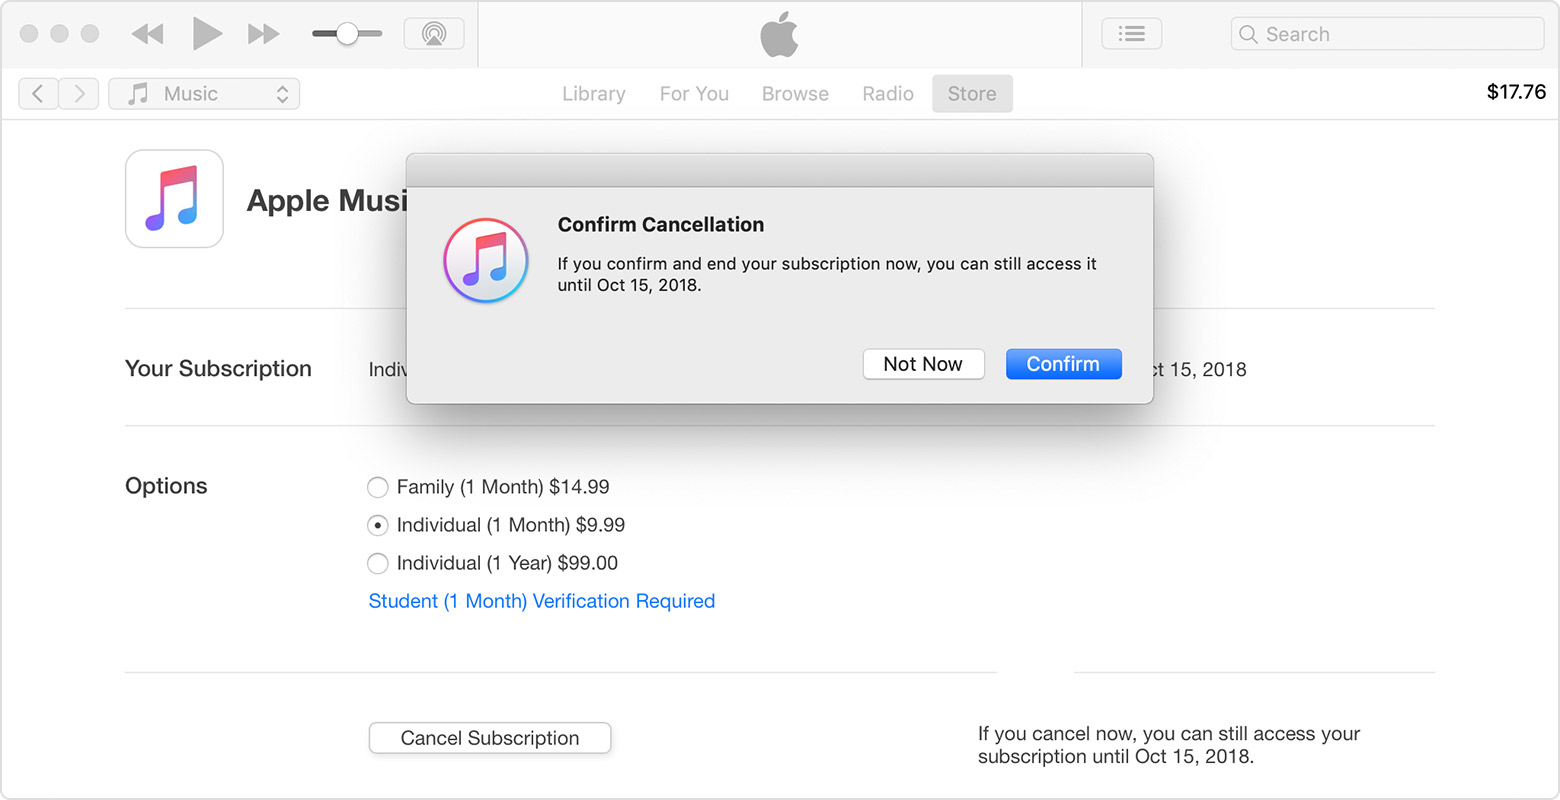 An iTunes window showing an Apple Music subscription. A message is in the foreground asking to confirm cancellation of the subscription.